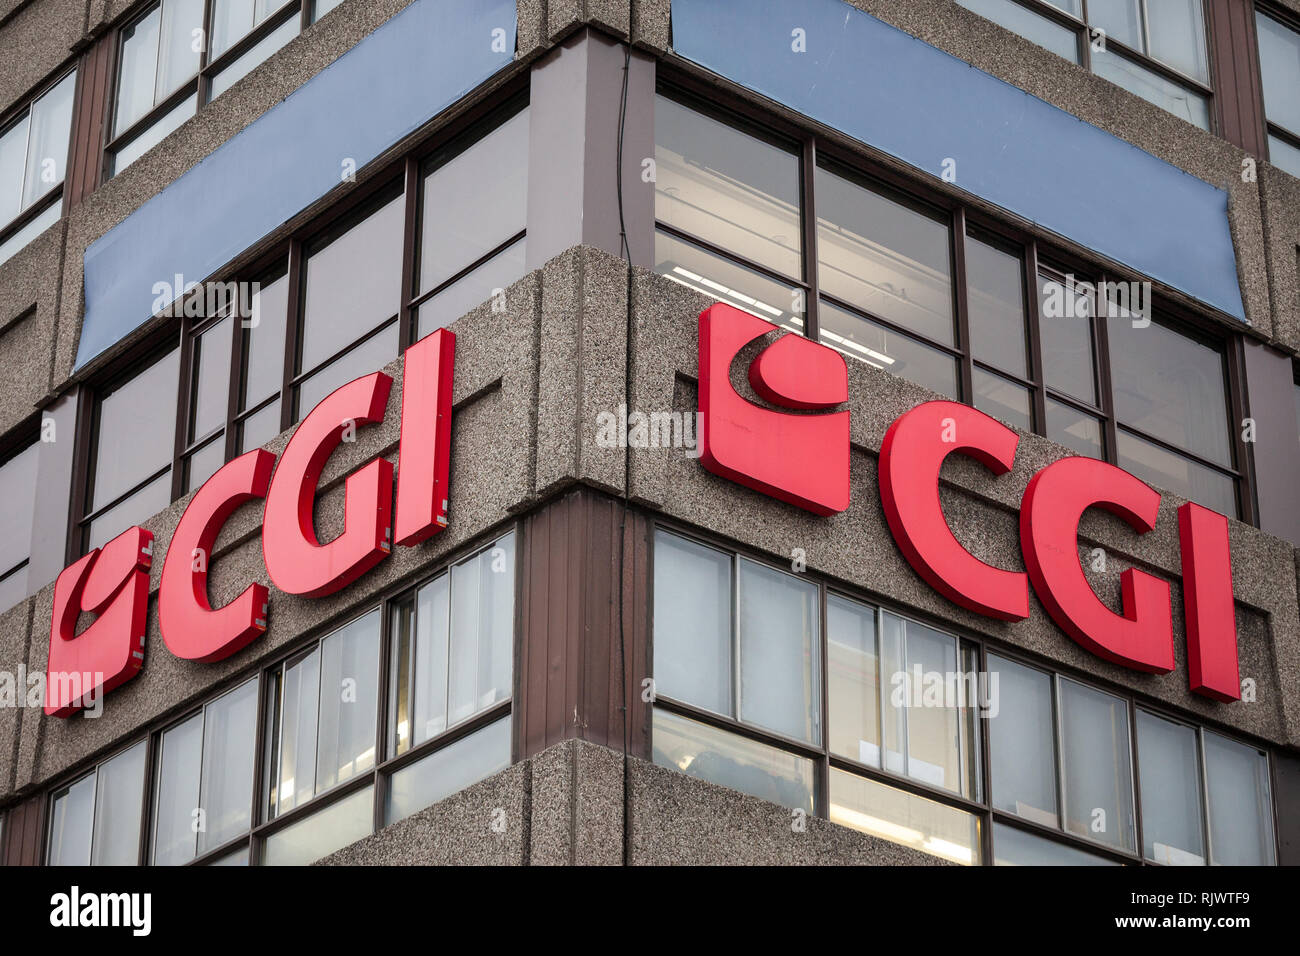 MONTREAL, CANADA - NOVEMBER 9, 2018: CGI Group on their office in Montreal, Quebec. Also known as Conseillers en Gestion Informatique, it is a Canadia - Stock Image